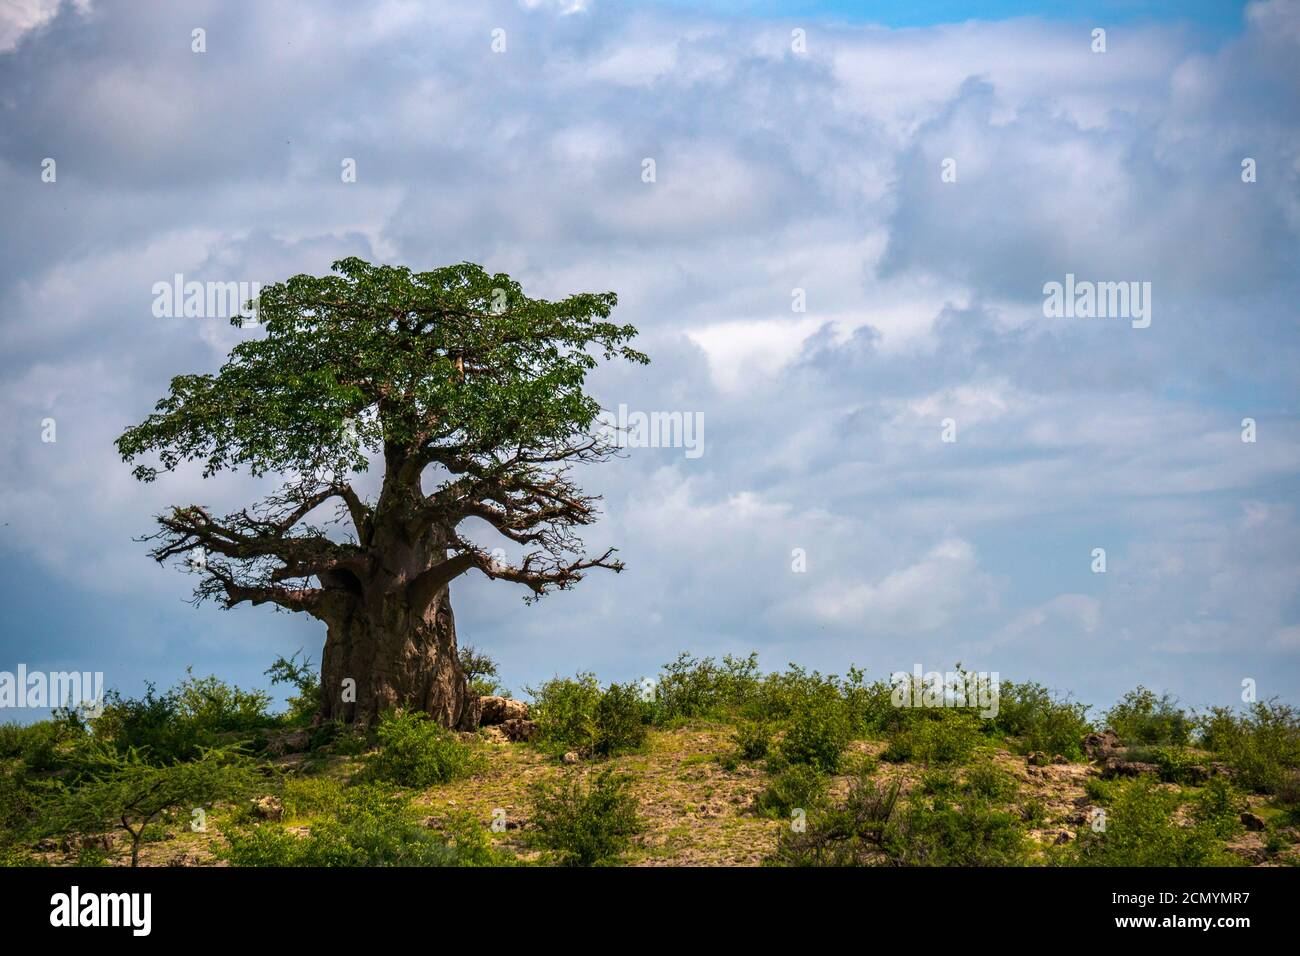 A lonely baobab tree On the top of Slope against cloudy sky background. Arusha Region, Tanzania, Africa Stock Photo